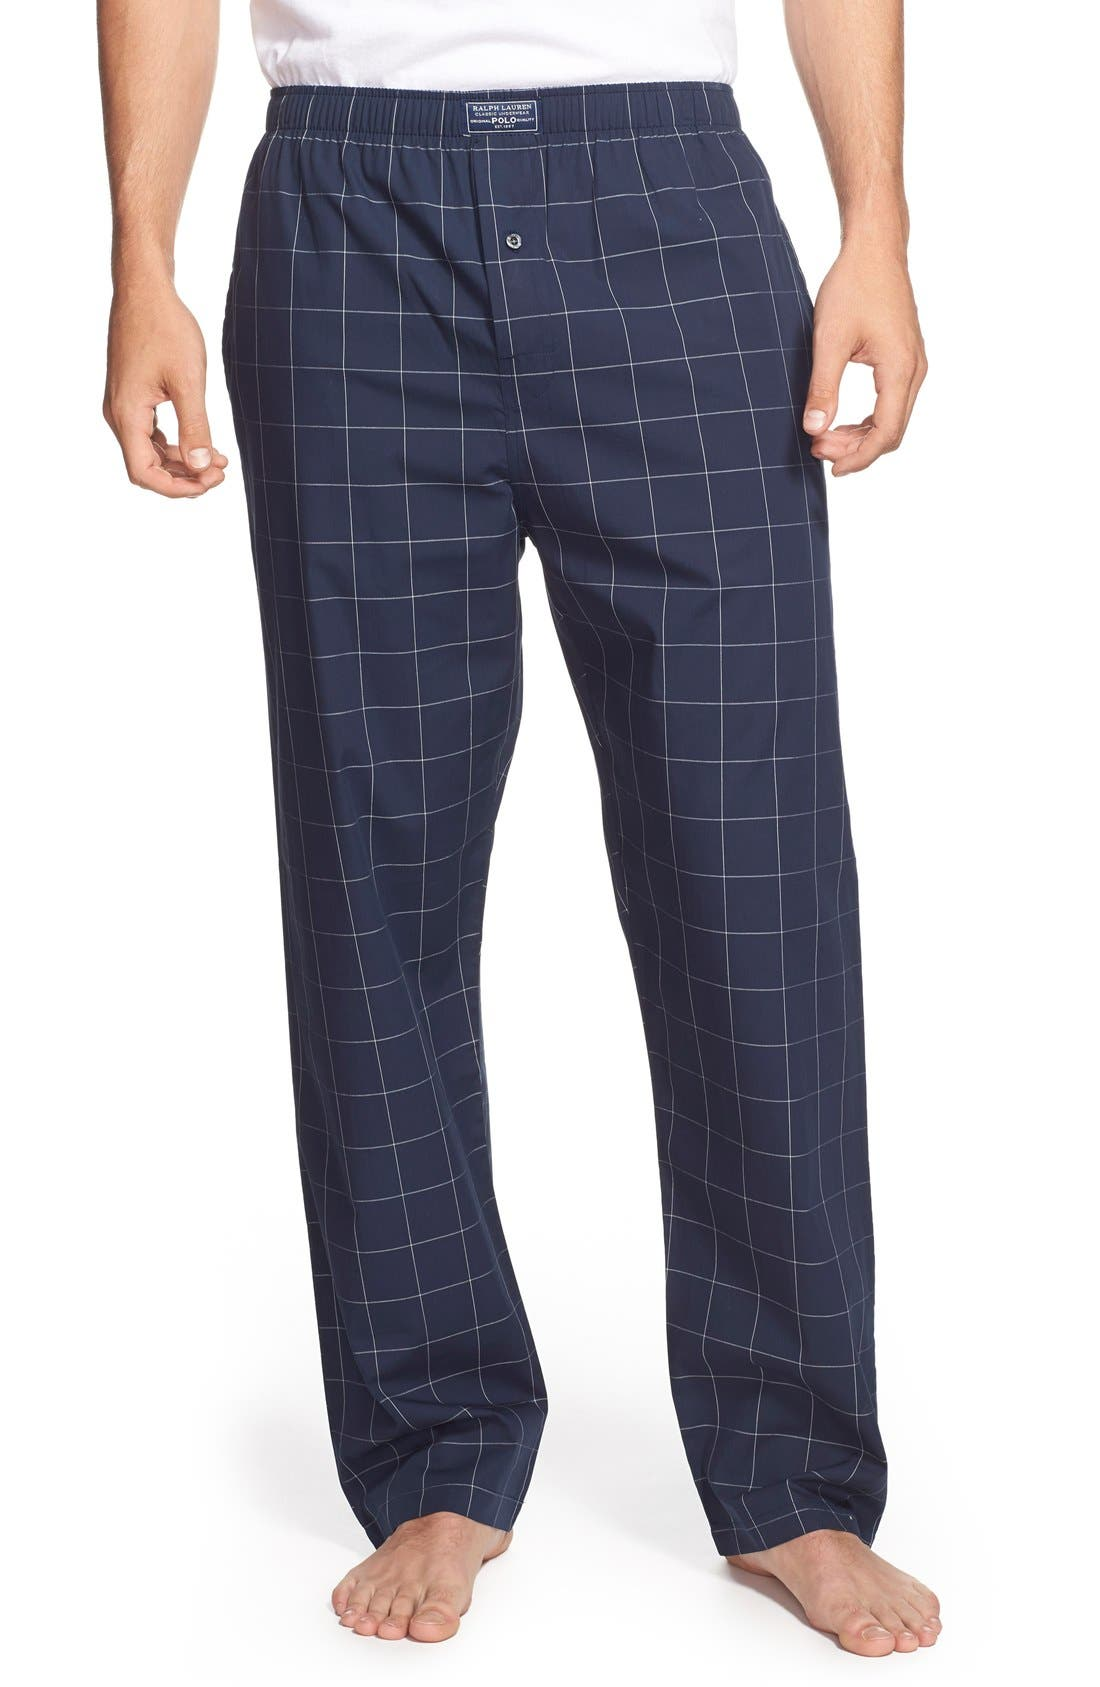 POLO RALPH LAUREN, Cotton Pajama Pants, Main thumbnail 1, color, CRUISE NAVY